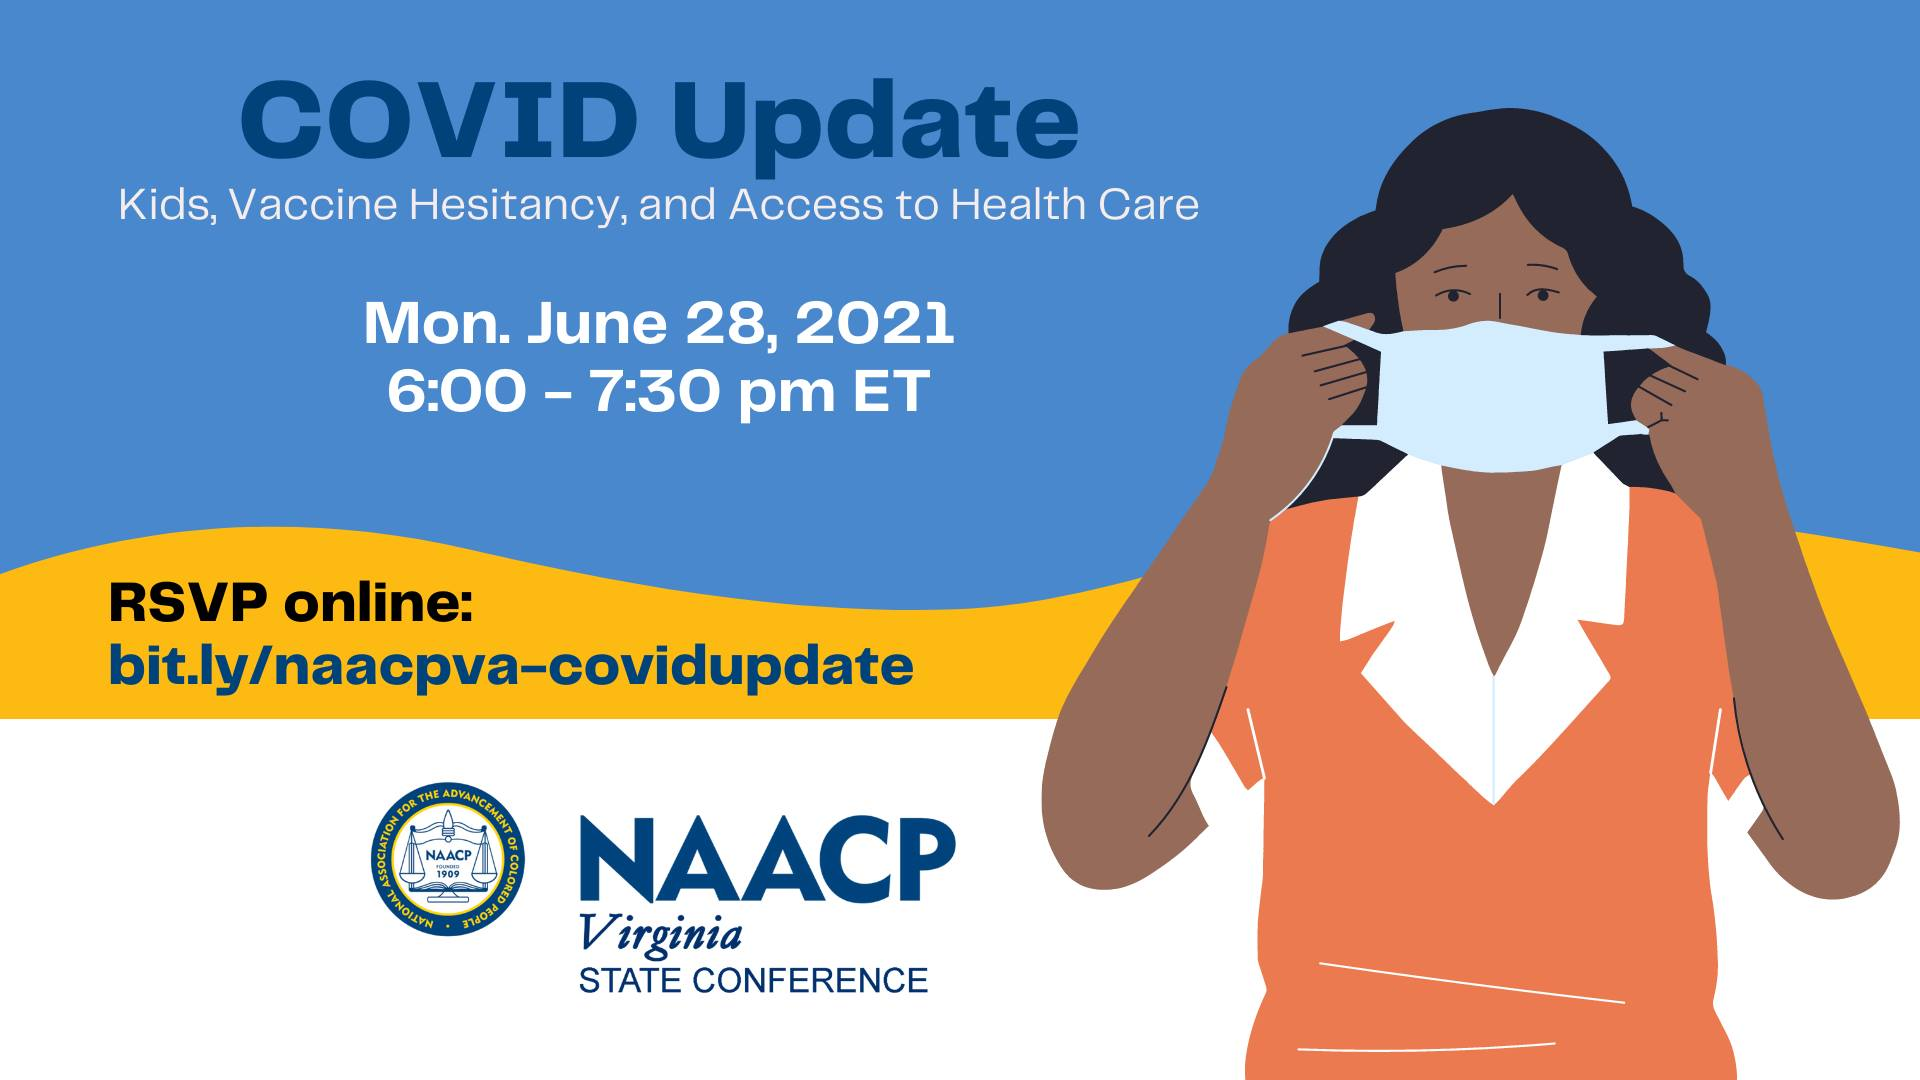 COVID-19 Update: Kids, Vaccine Hesitancy, and Access to Health Care via @joinlcac